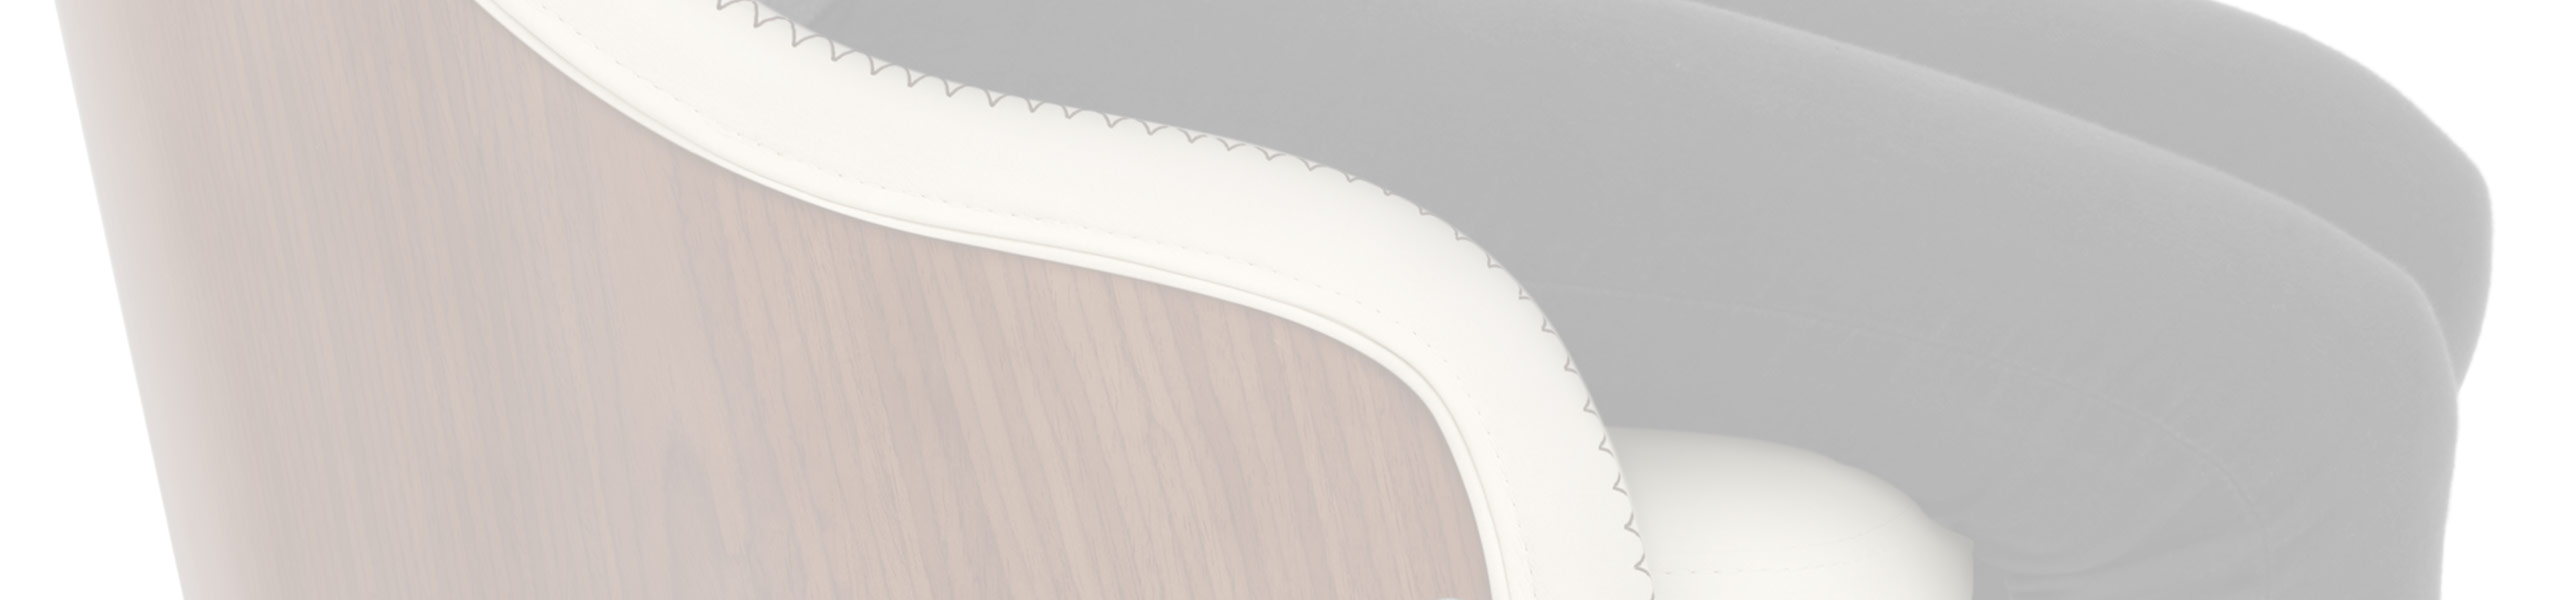 Fusion Walnut Stool Cream Review Banner